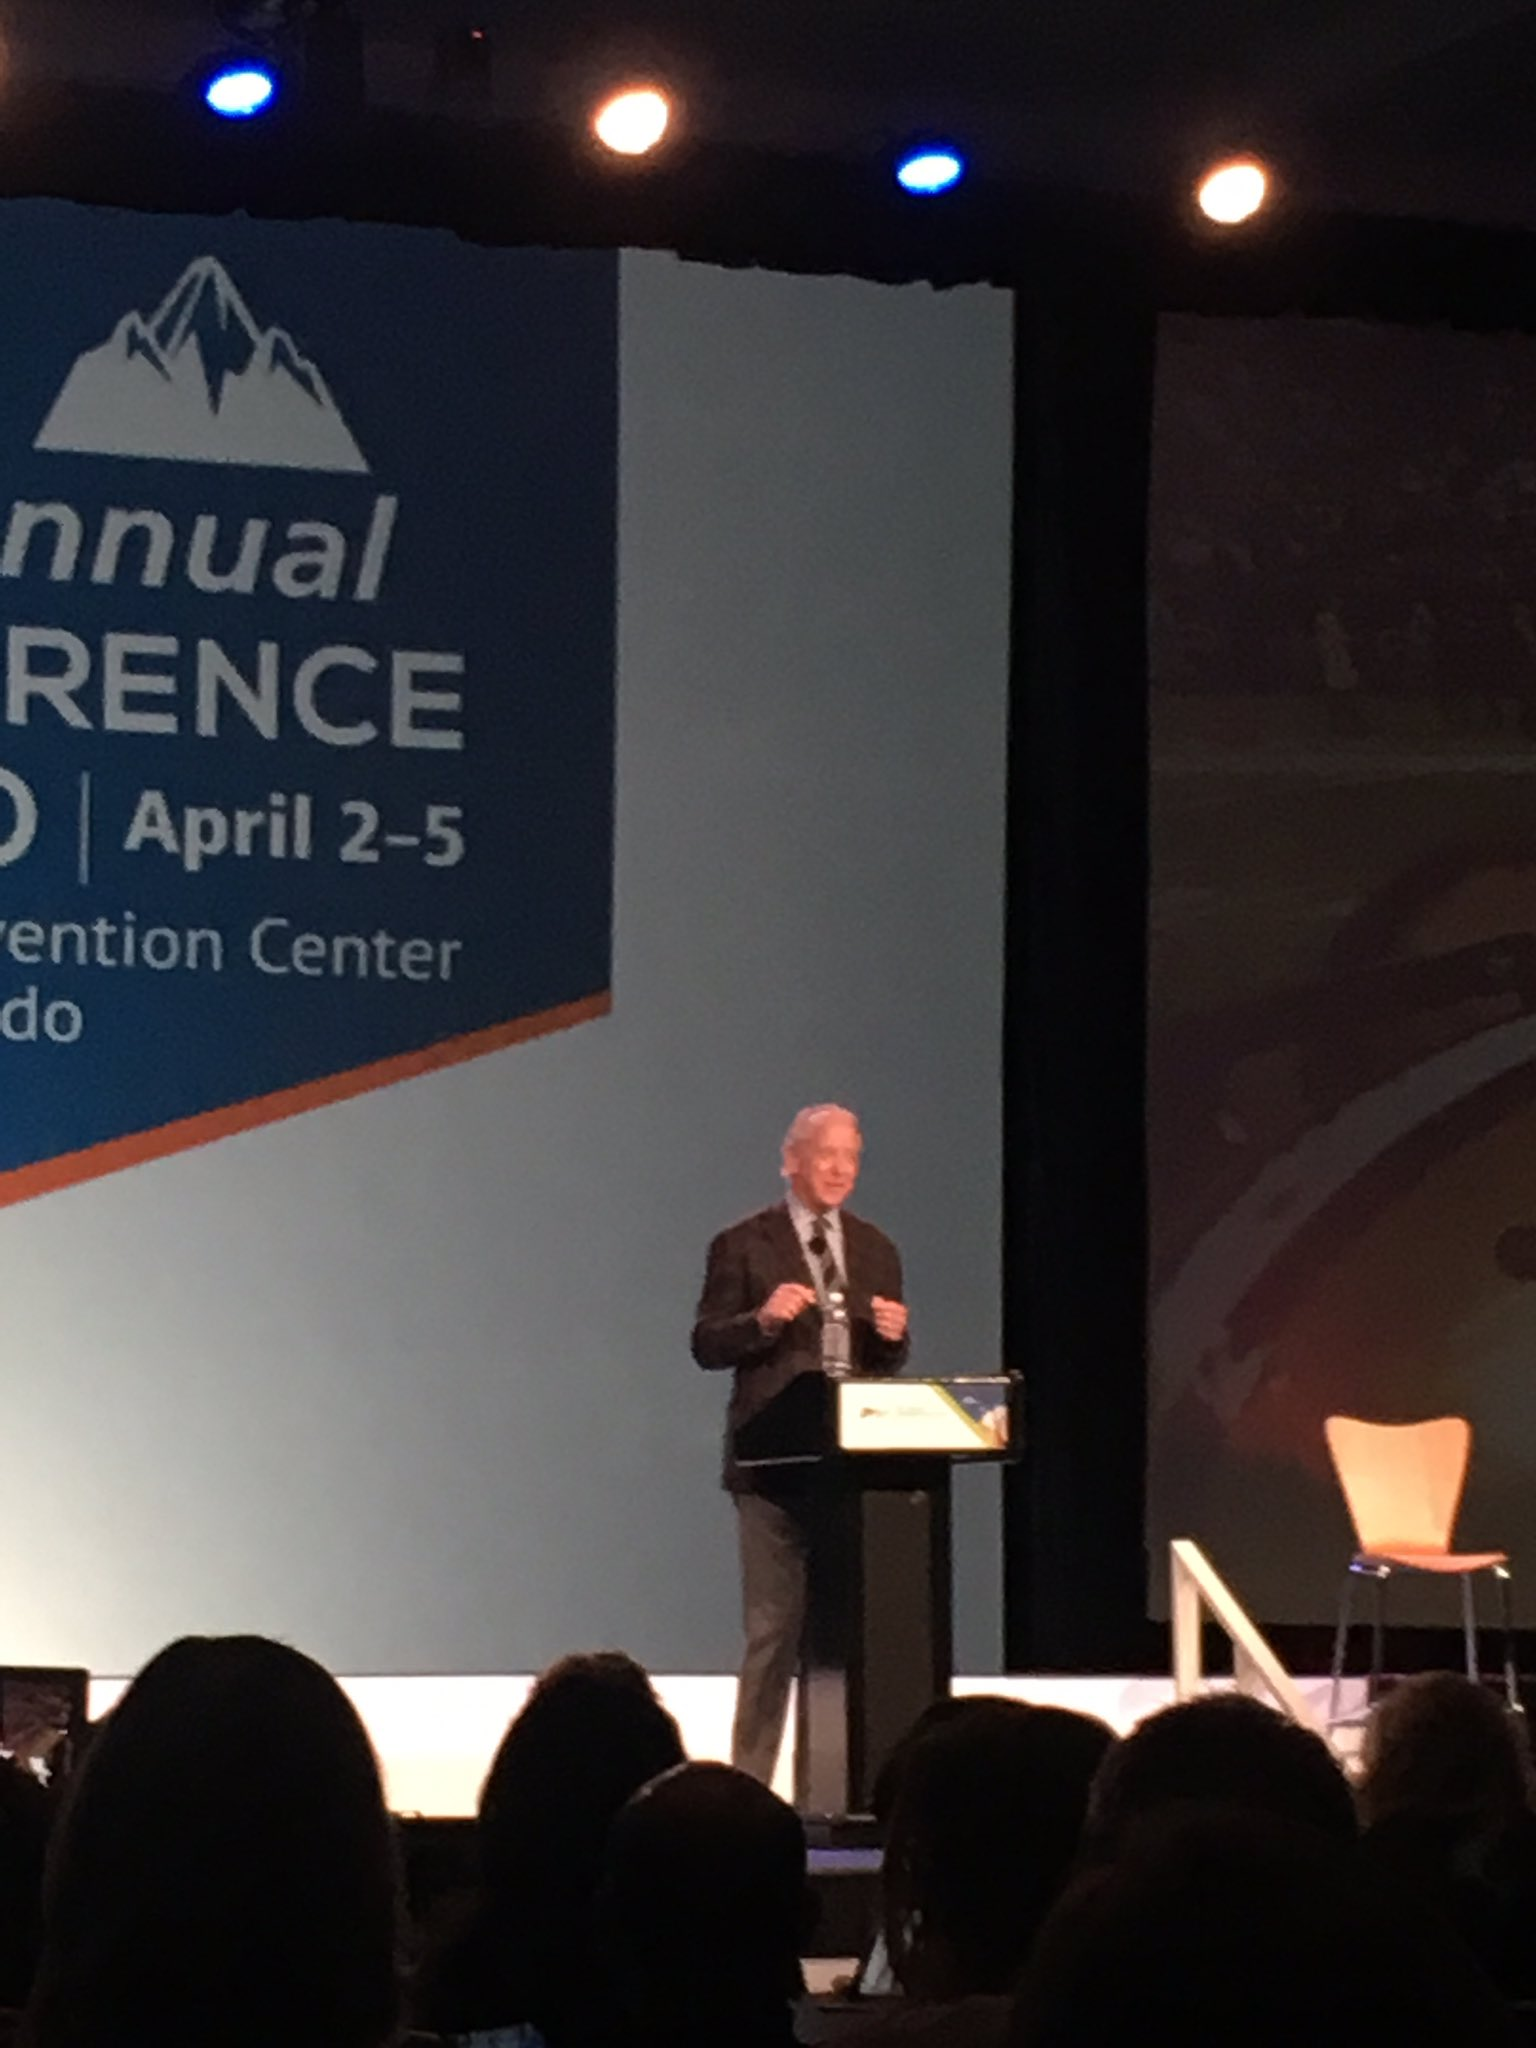 We got to hear Archie Manning give a keynote presentation this morning on leadership! #ALAConf17 https://t.co/PHqnLoNJ0h